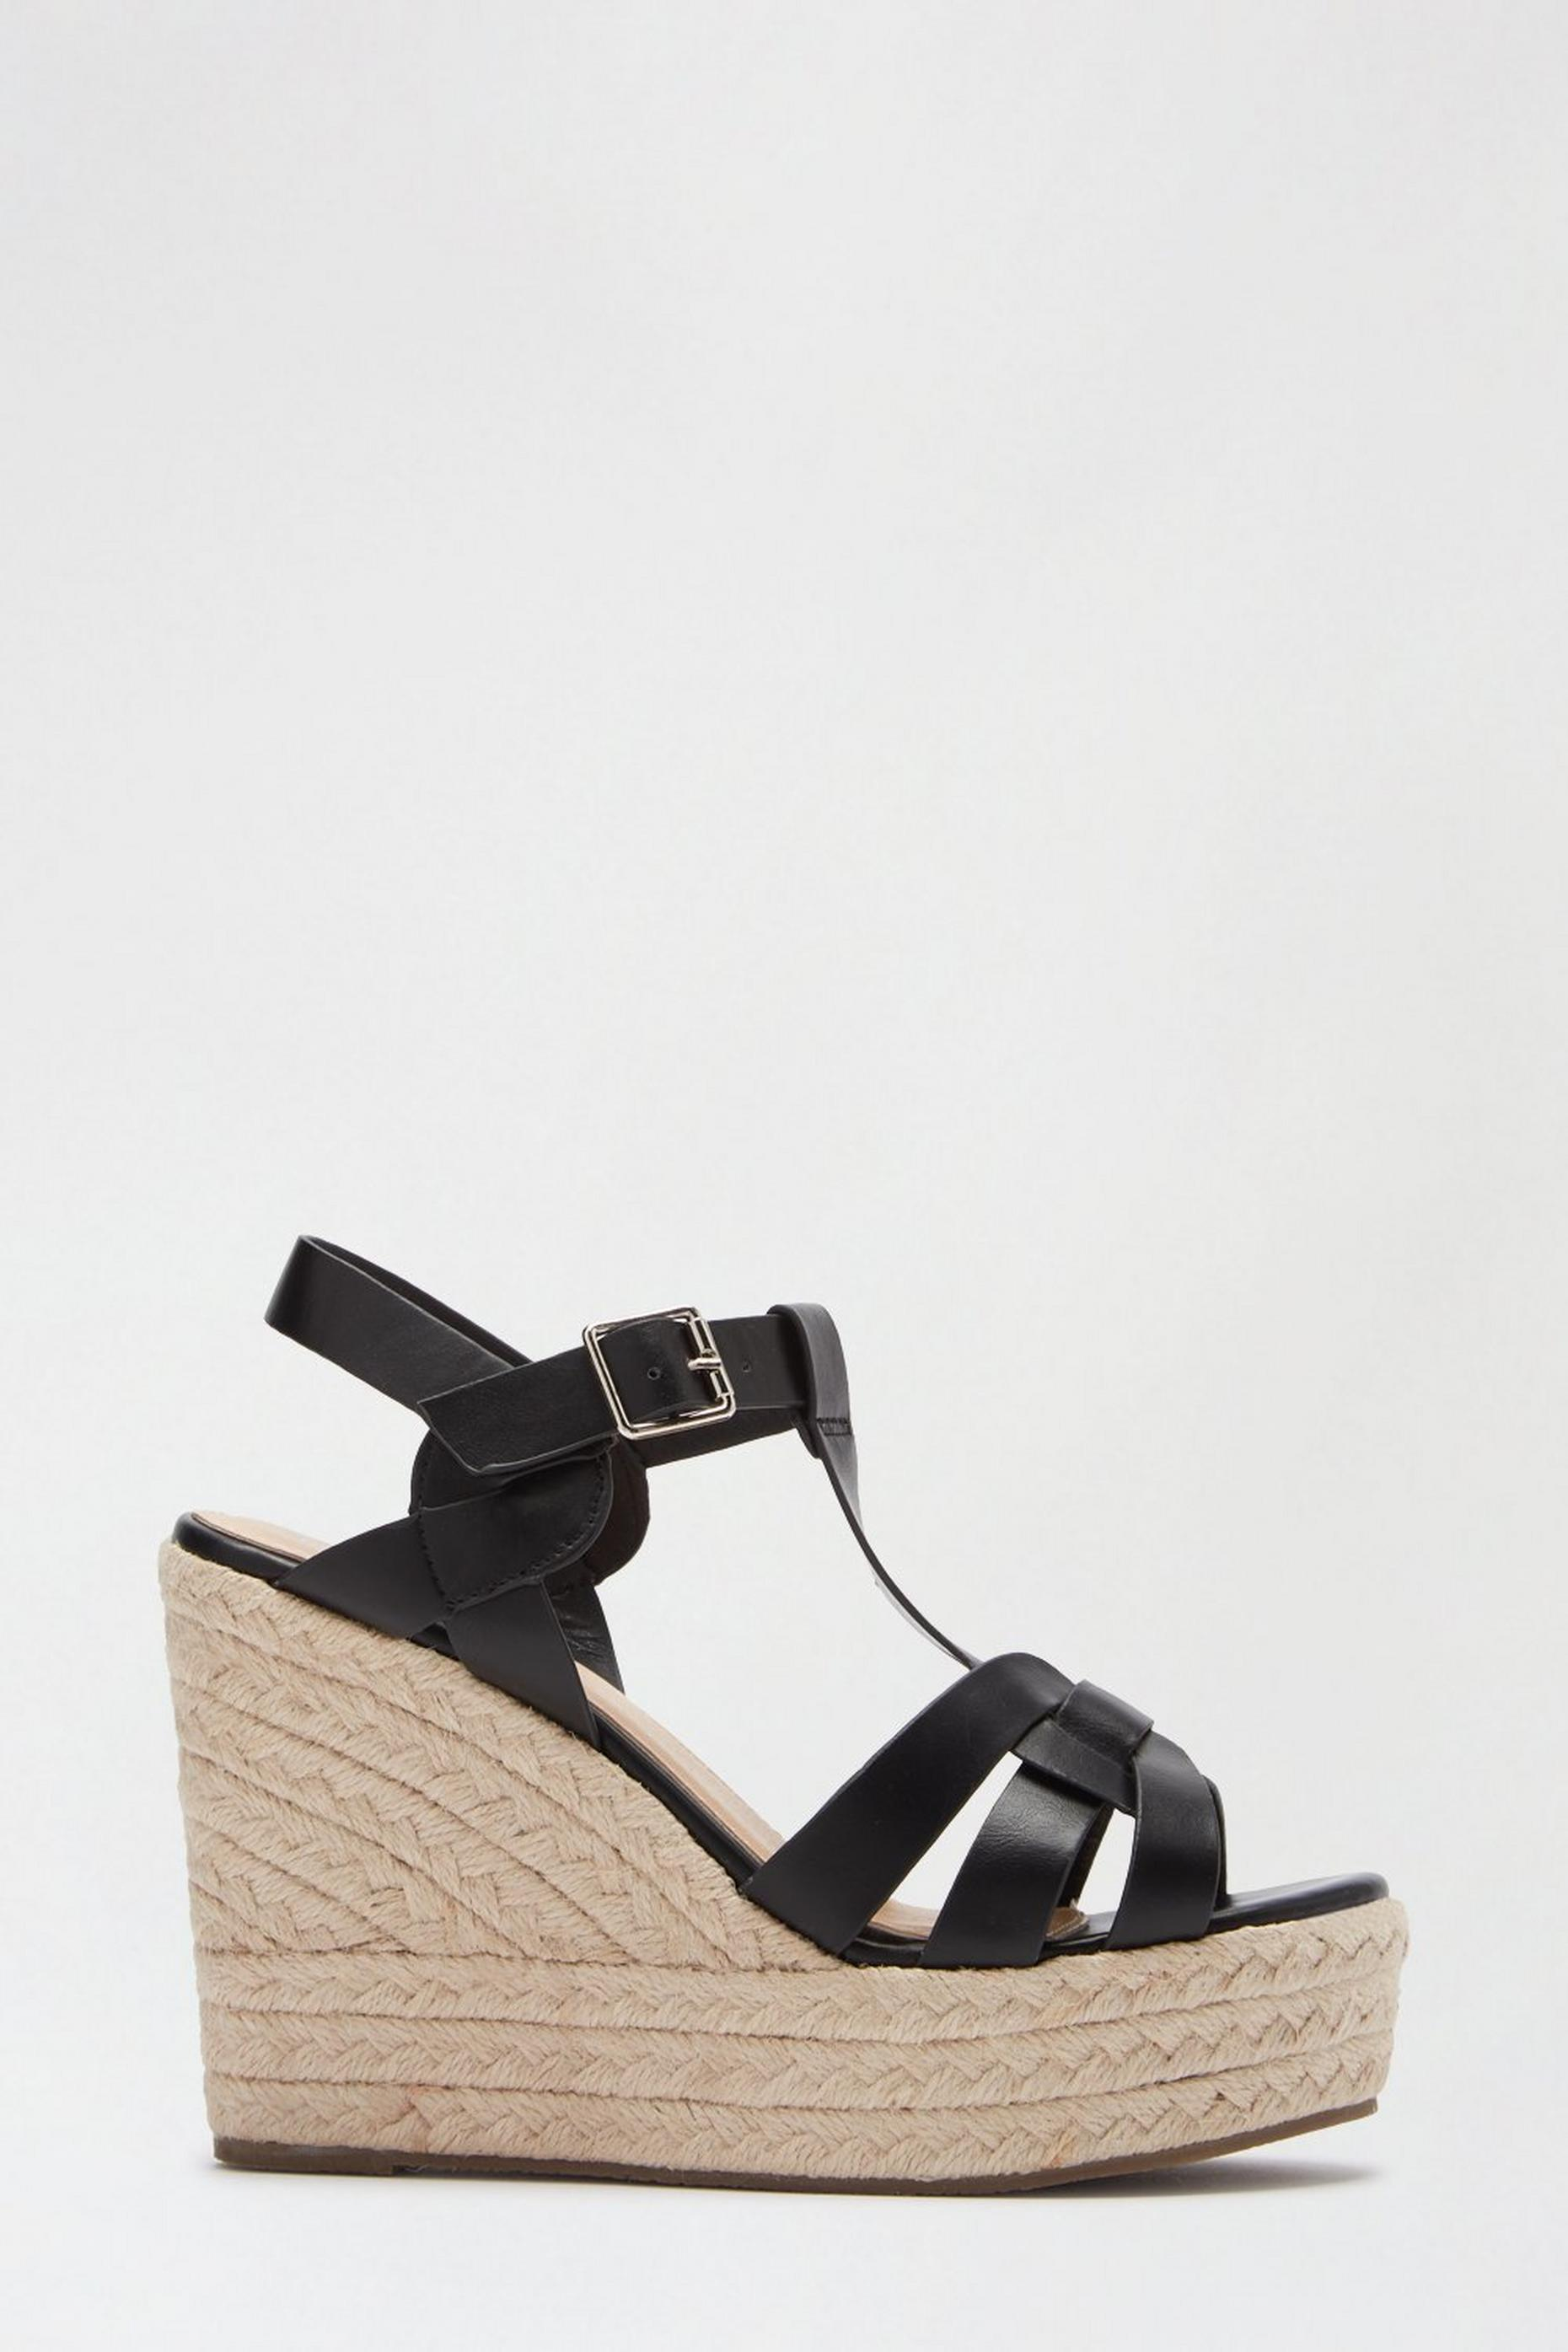 Black Row Woven Espadrille Wedge